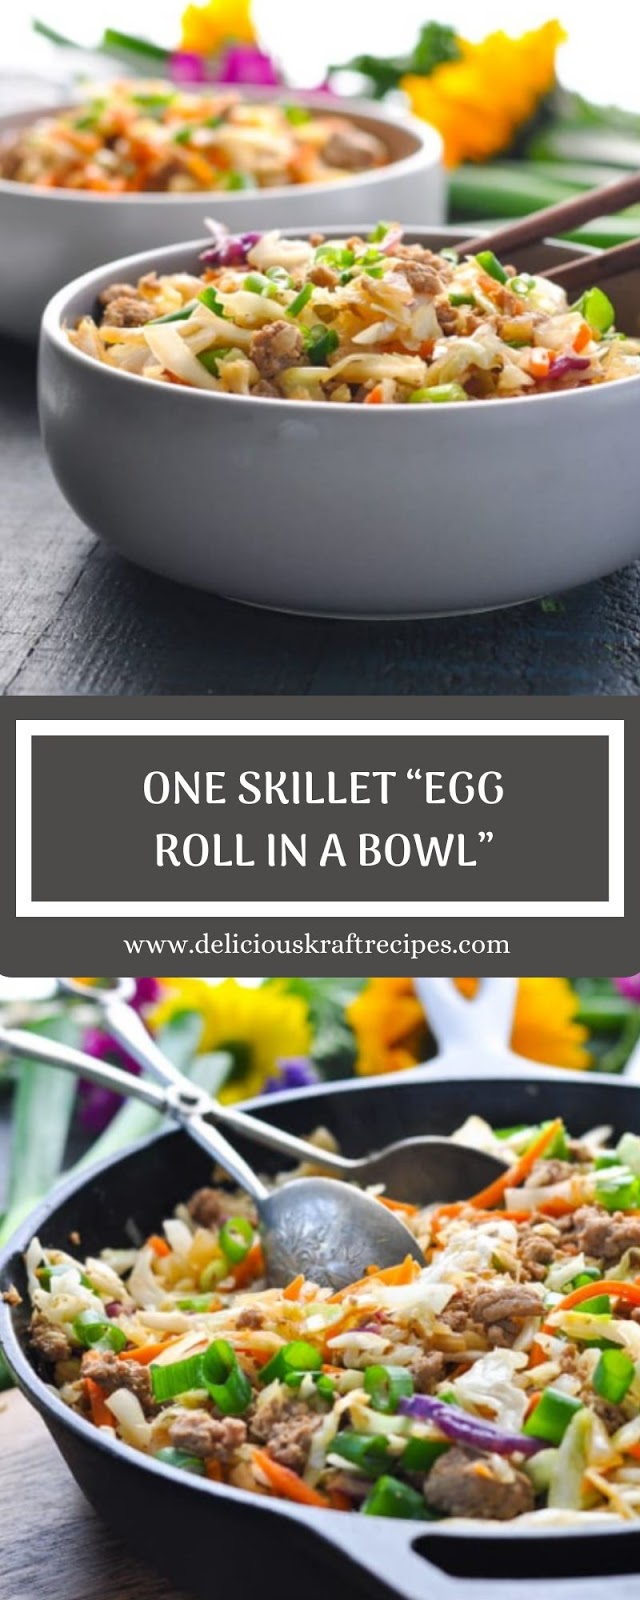 "ONE SKILLET ""EGG ROLL IN A BOWL"""